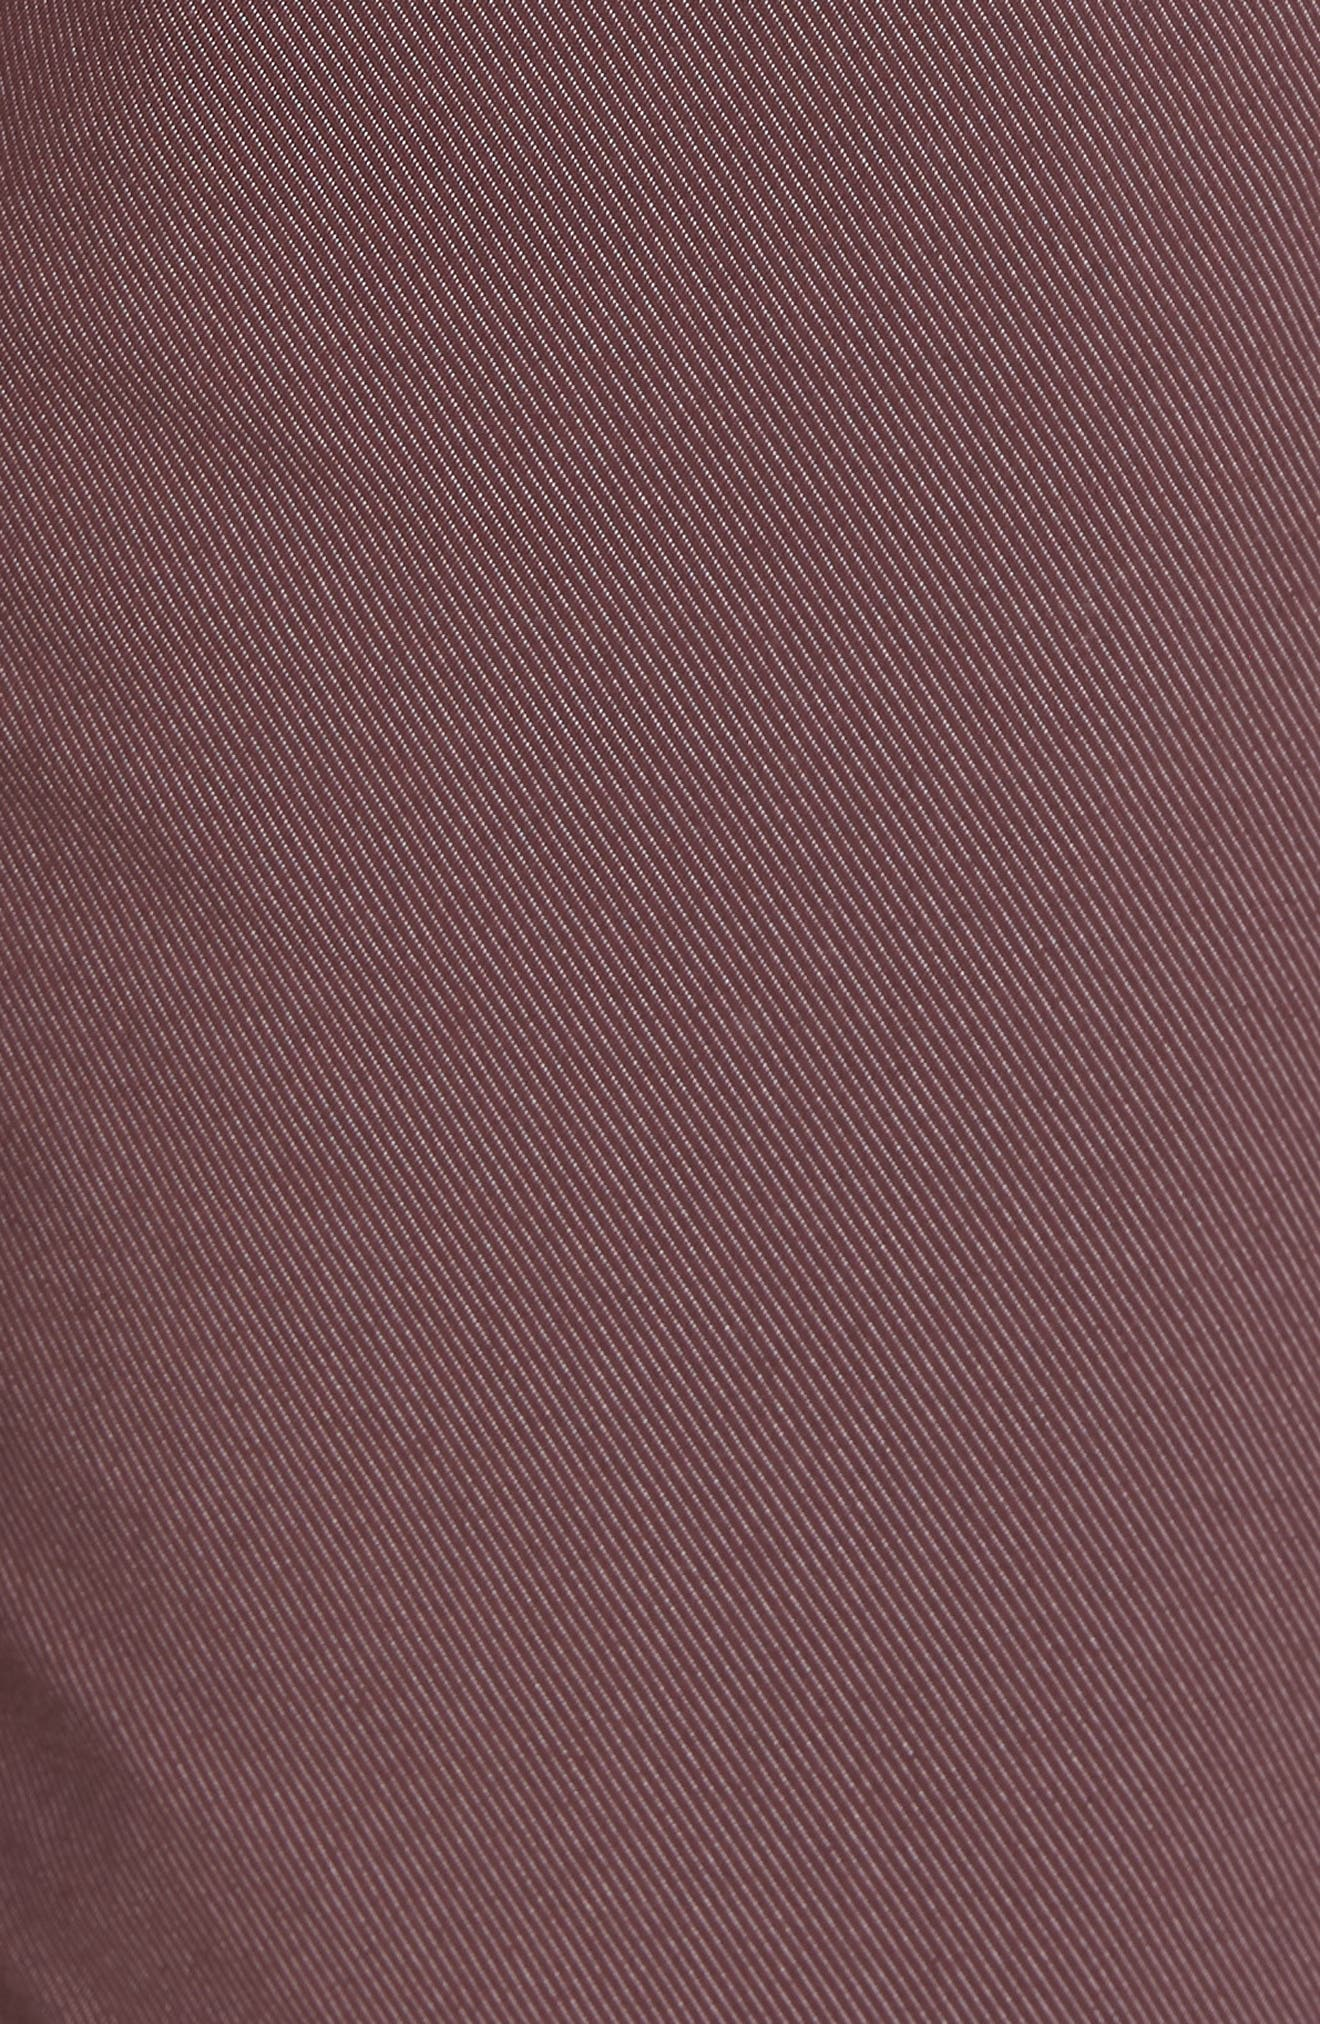 'Dry Out' Dri-FIT<sup>™</sup> Chino Shorts,                             Alternate thumbnail 198, color,